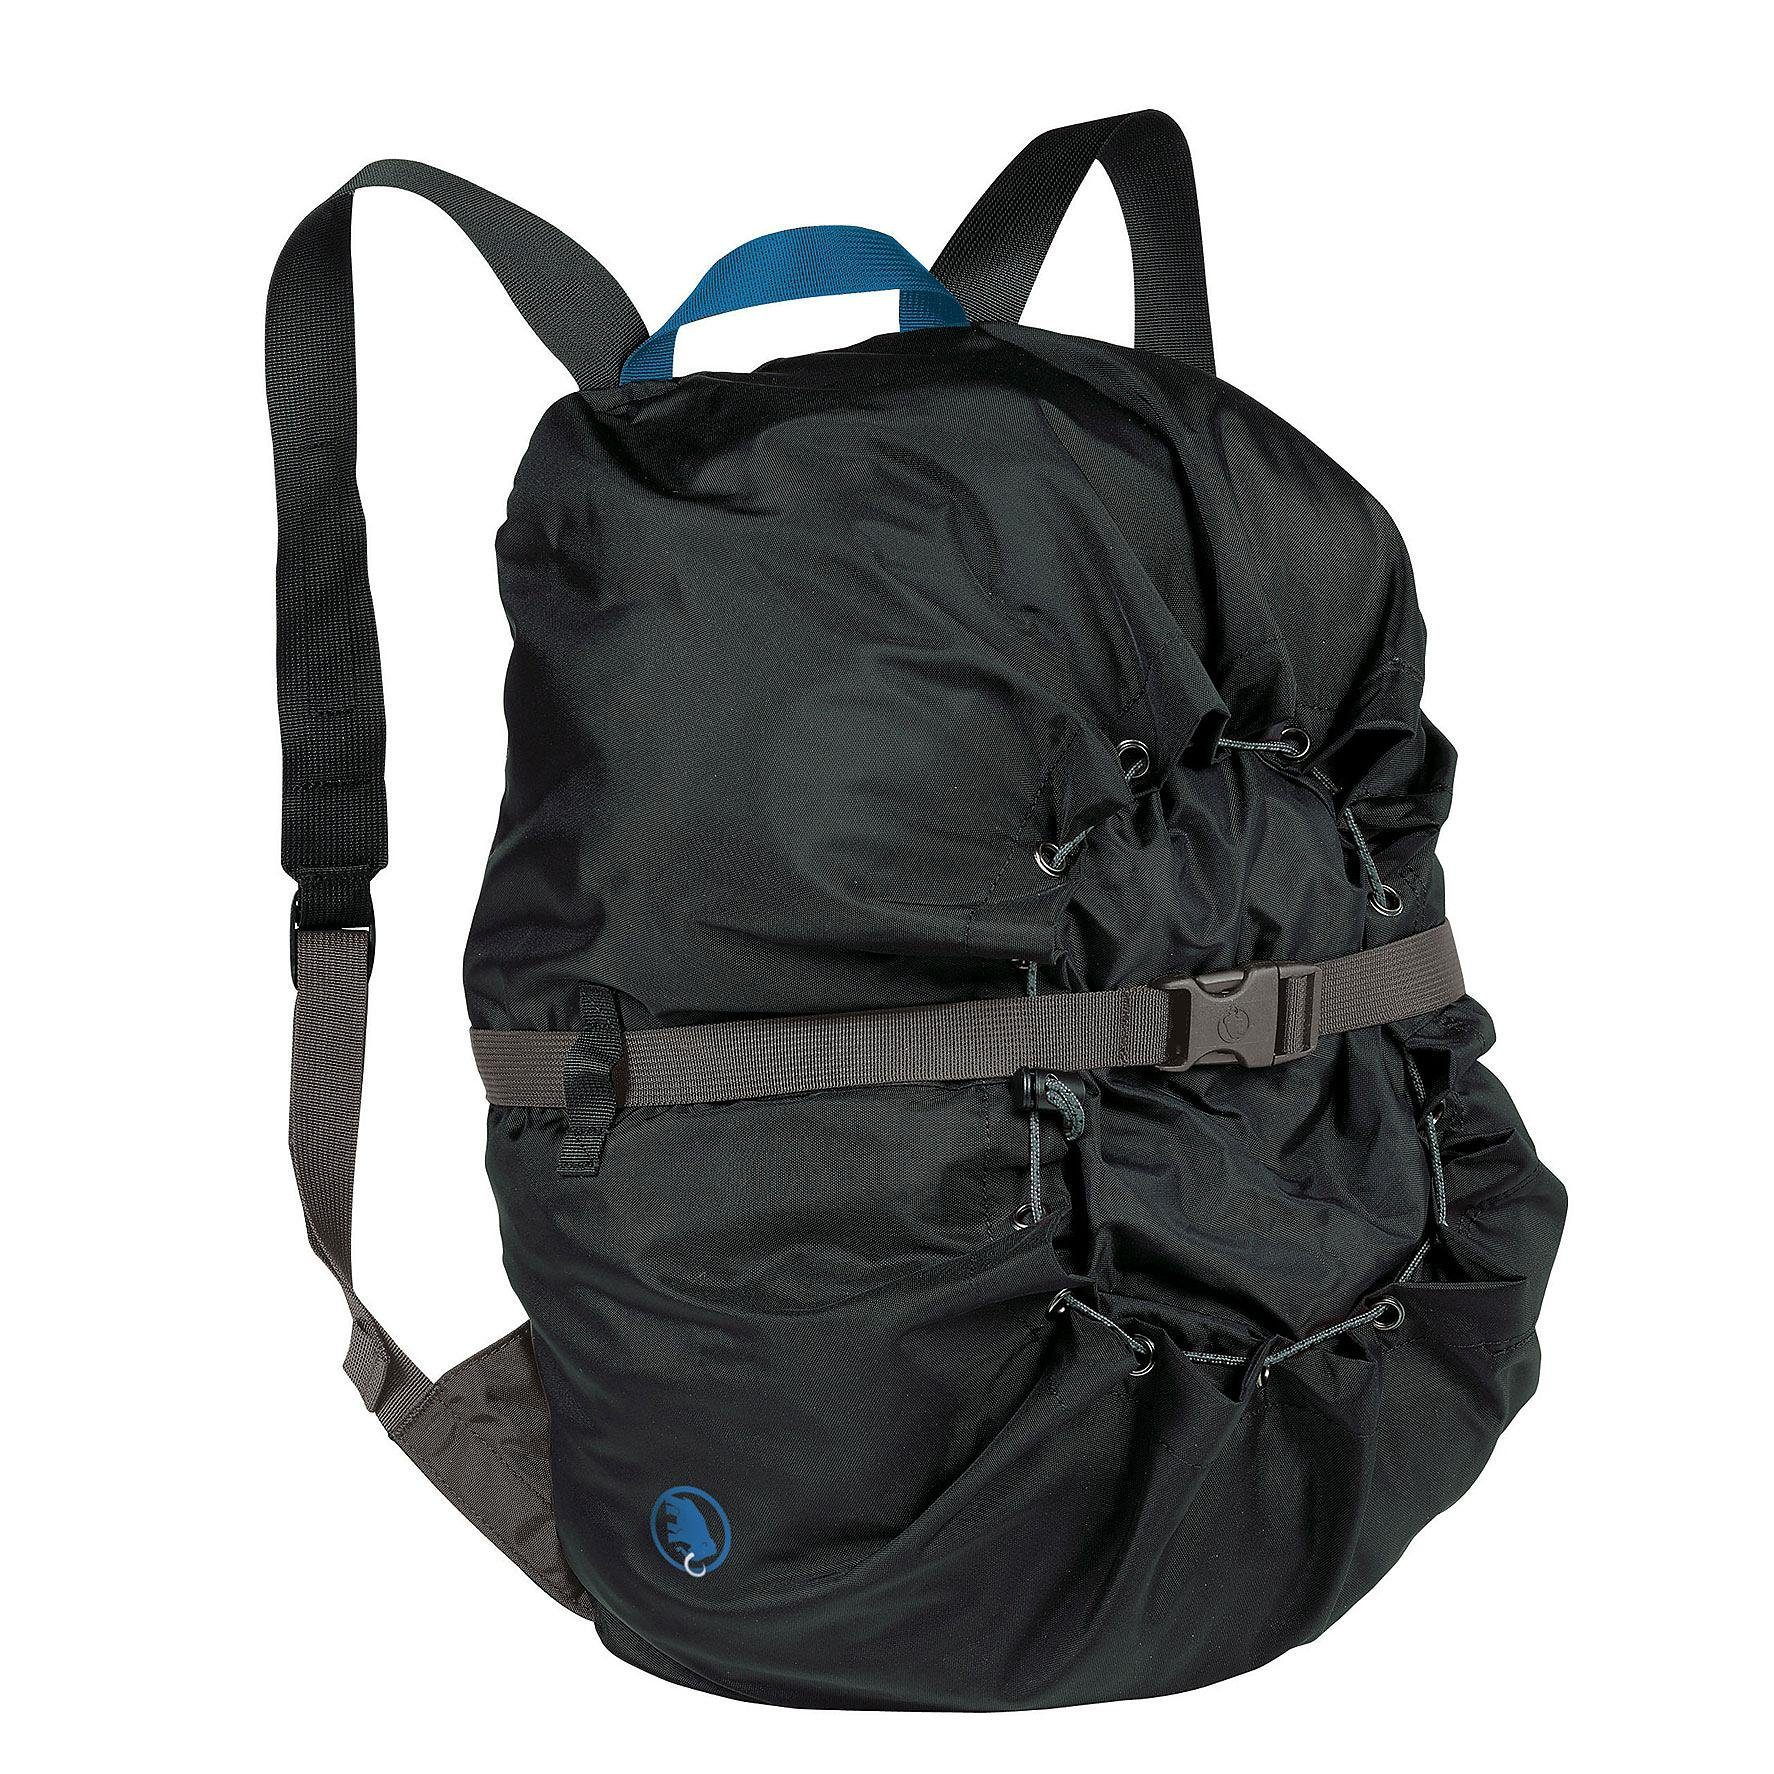 Mammut Kletterrucksack »Element Rope Bag«